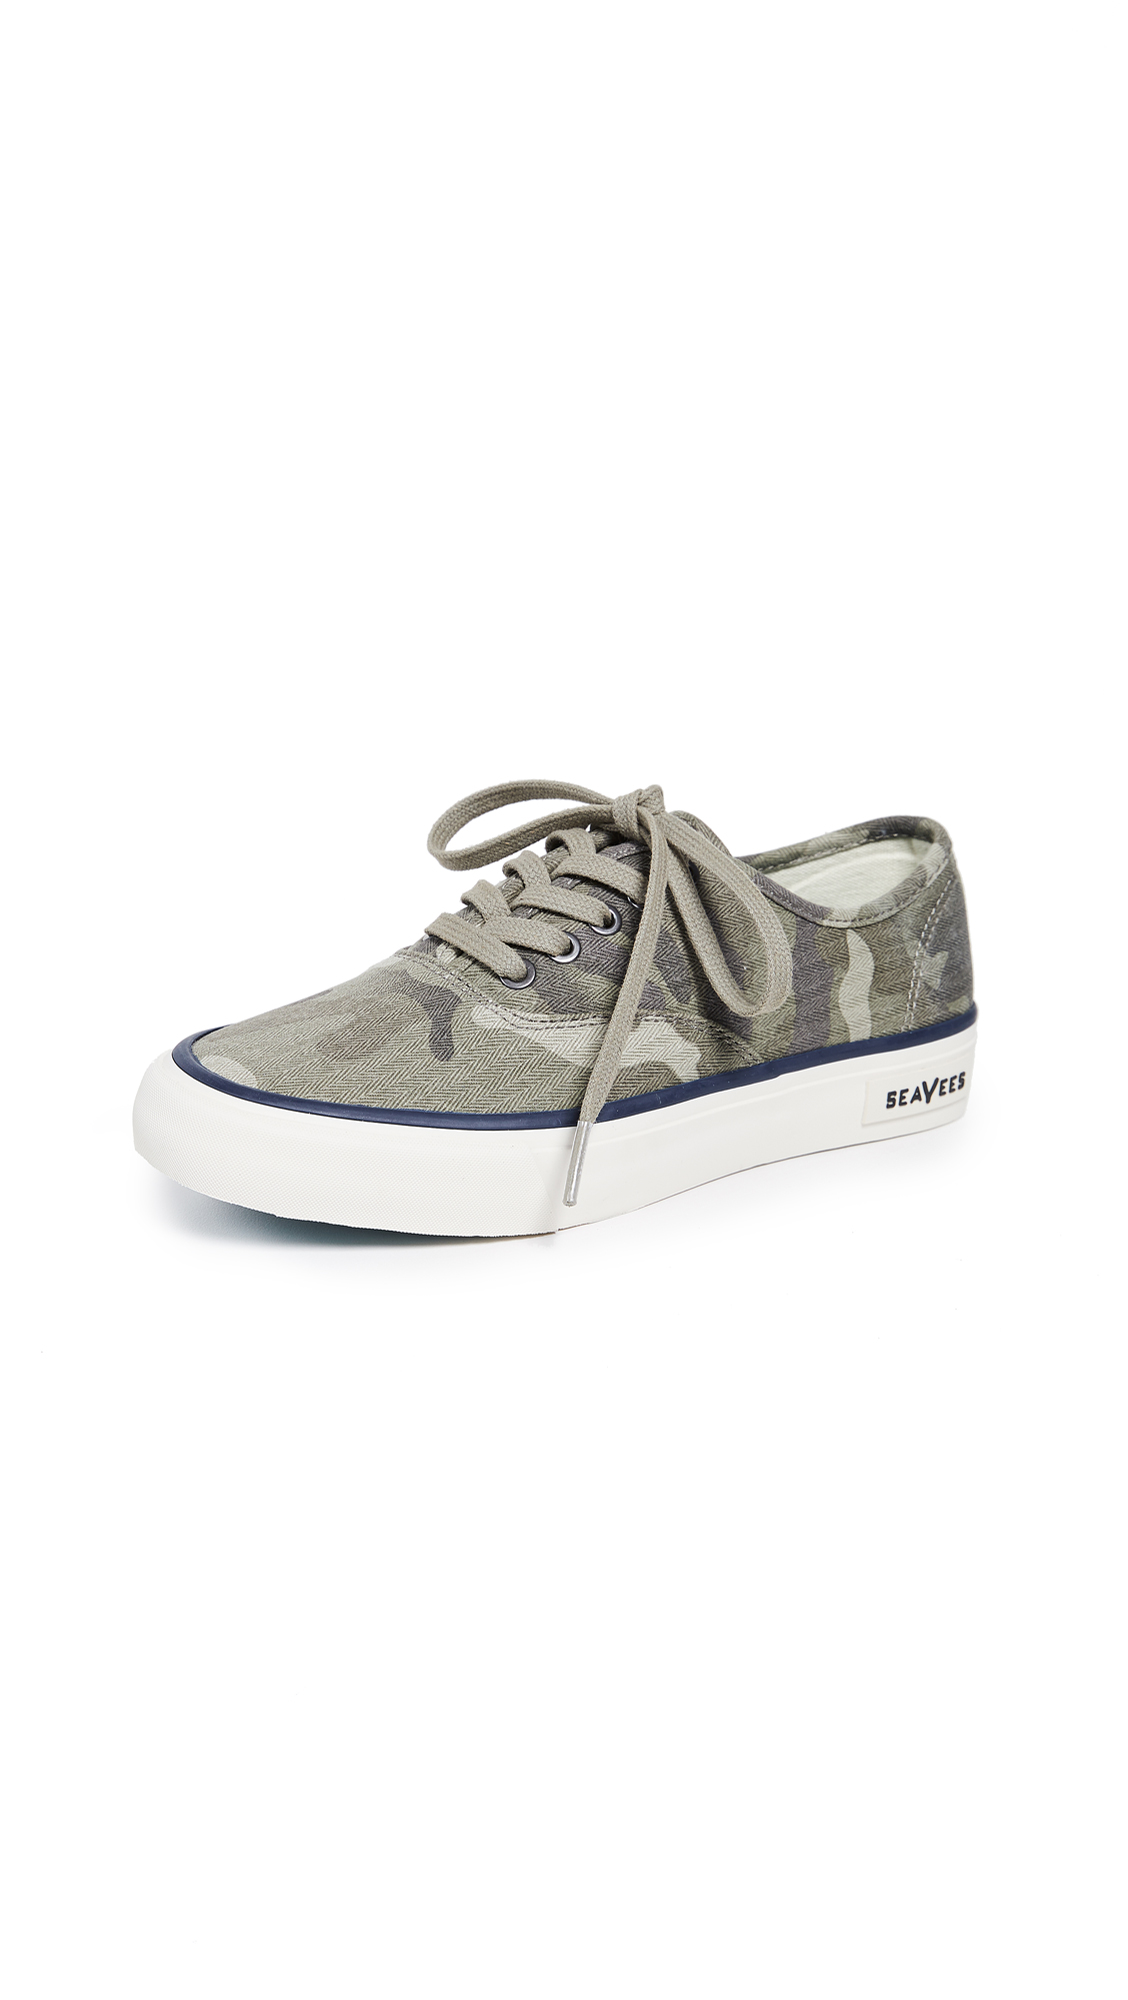 SeaVees Legend Sneakers - Sage Camo